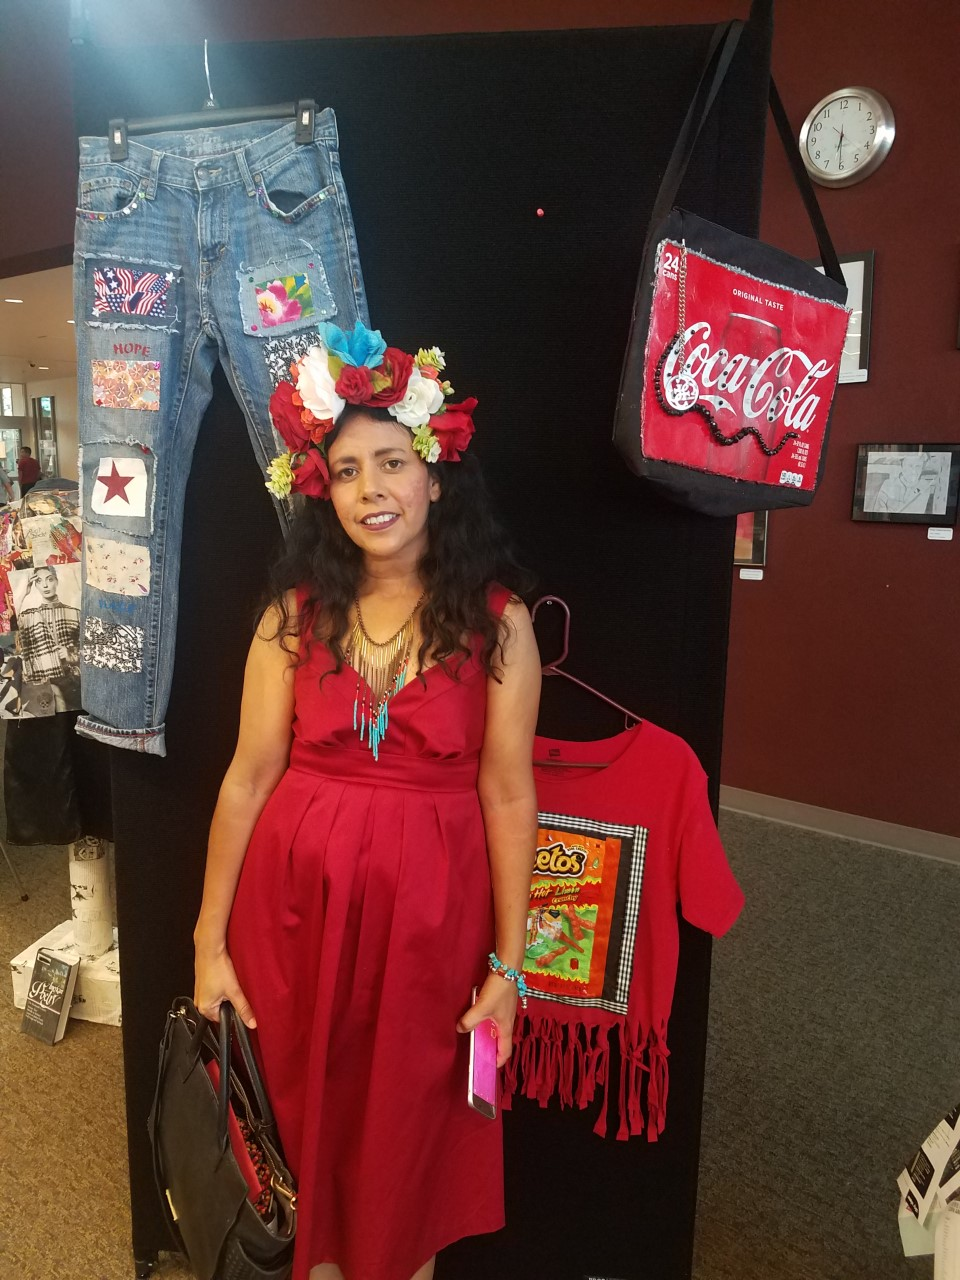 A woman in a red dress and flower crown standing beside mixed media art/clothing